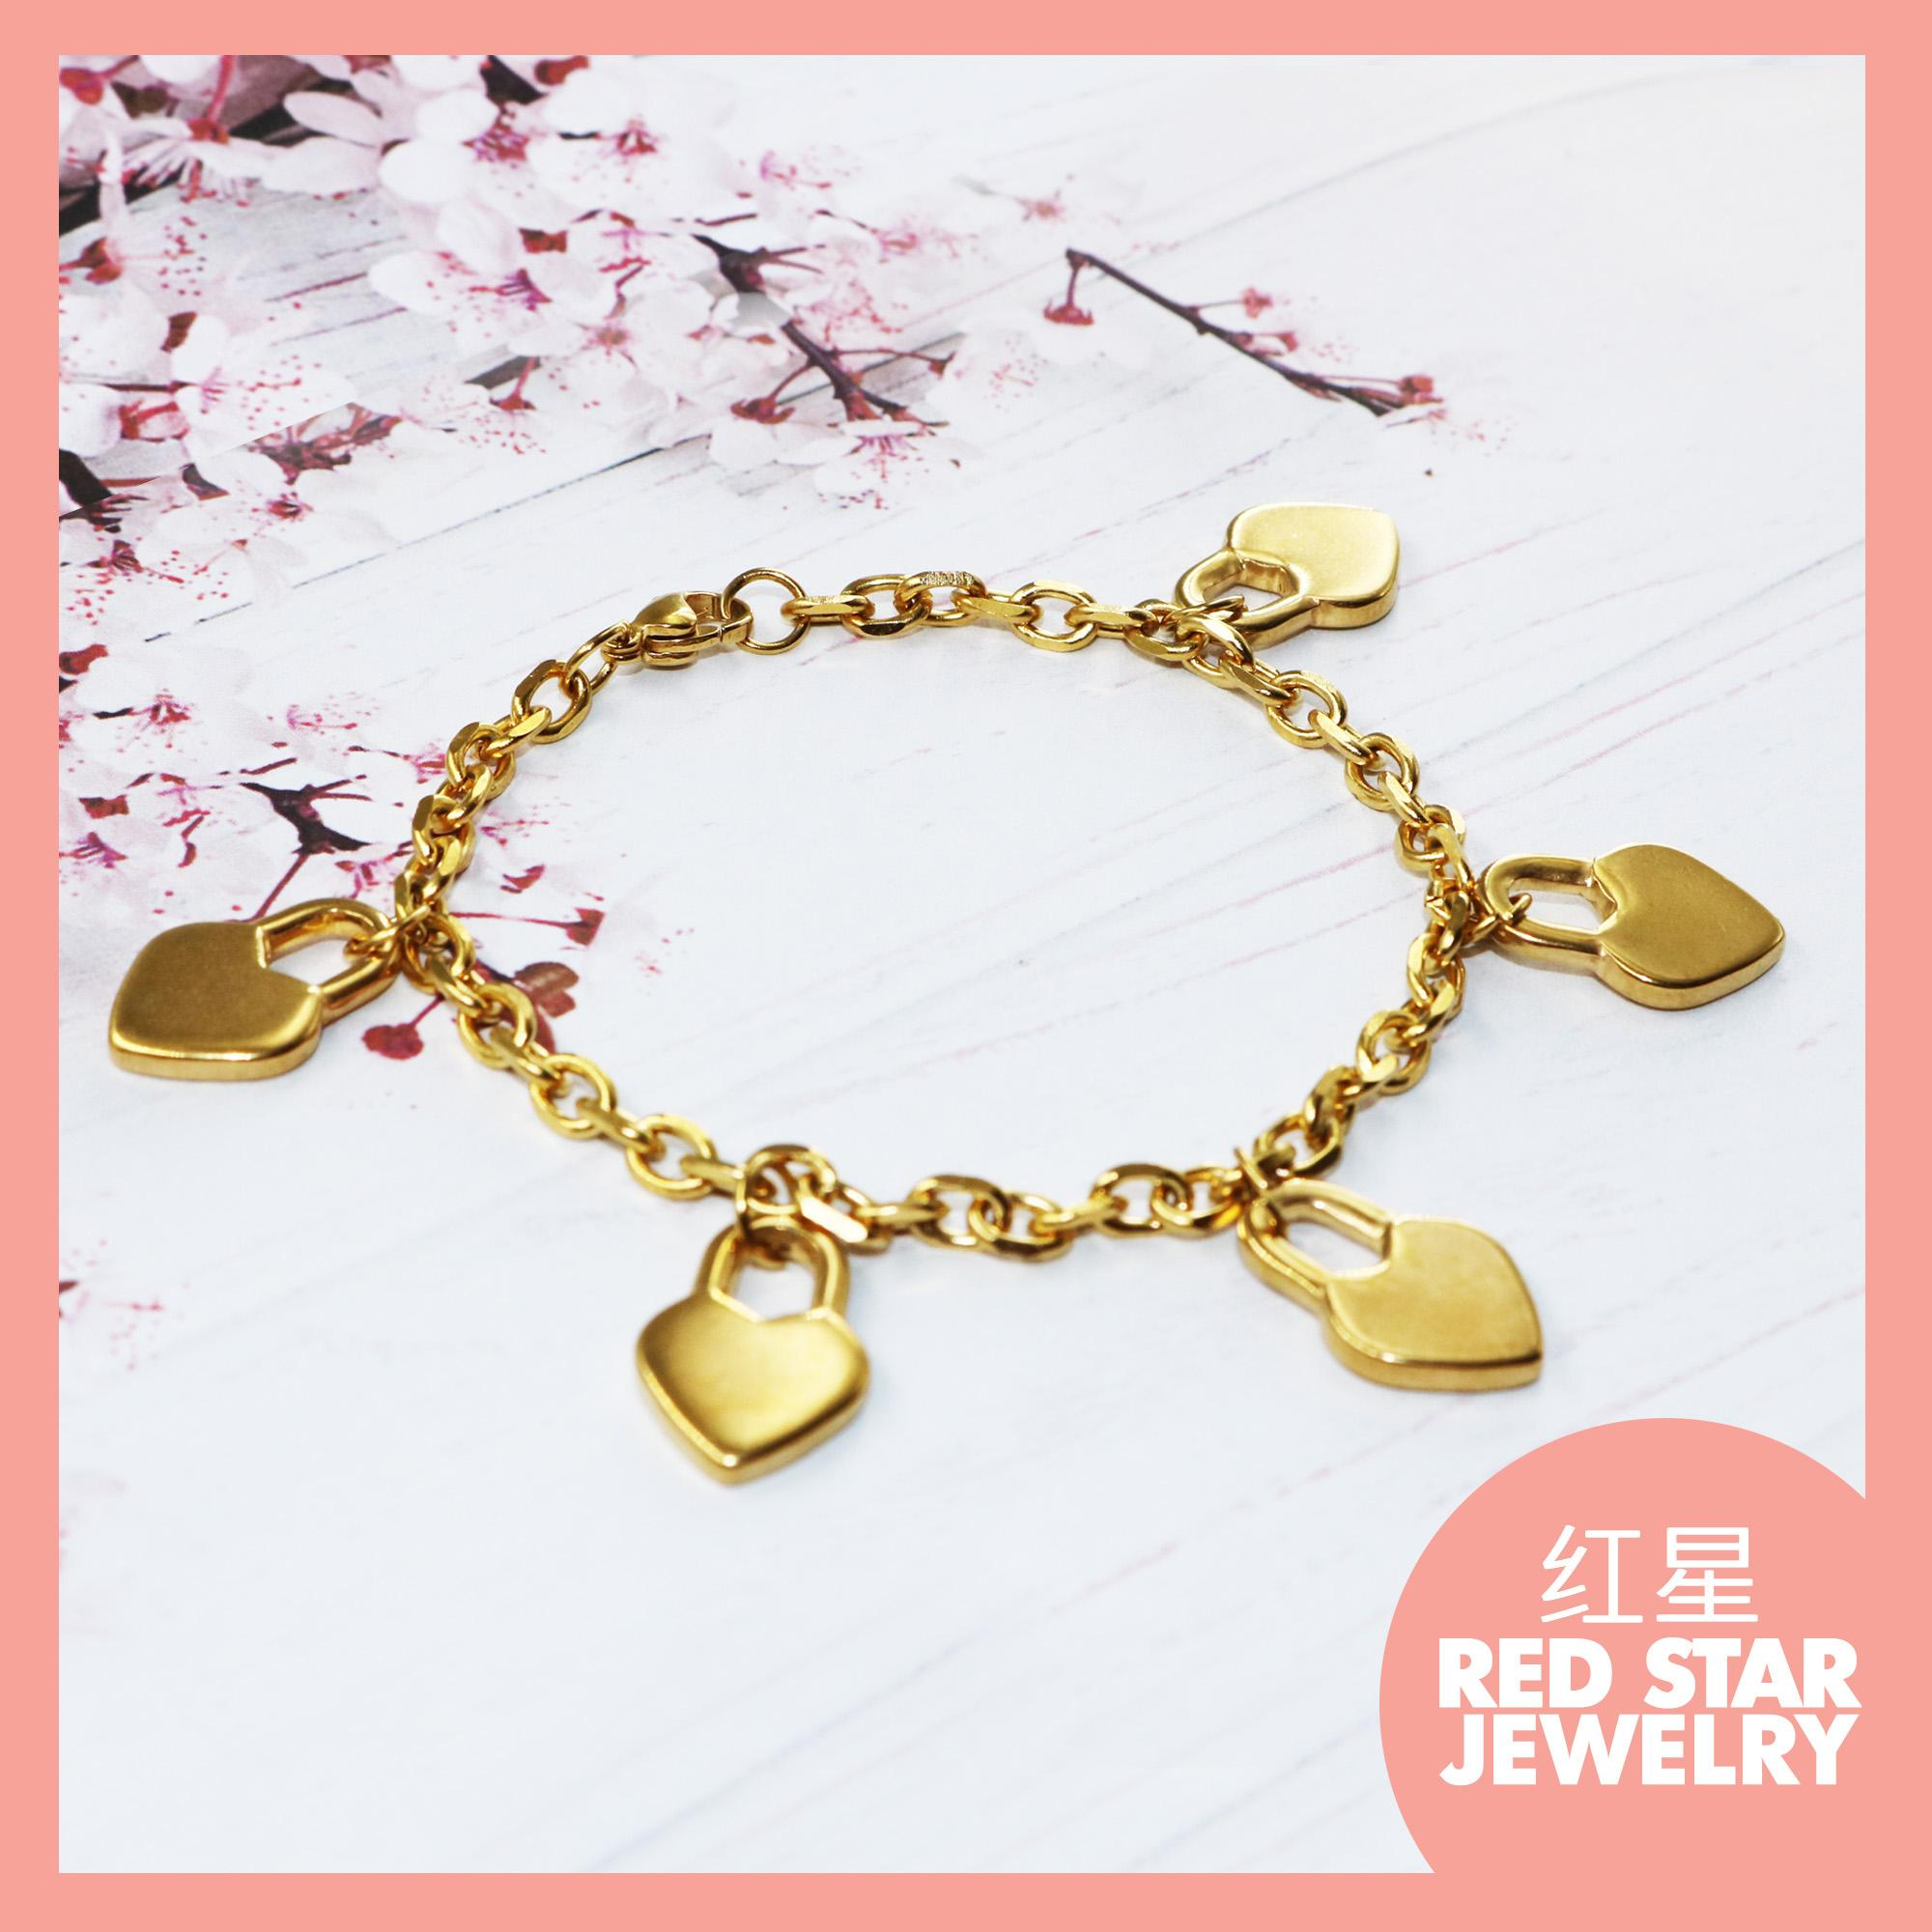 Red Star Jewelry Lock Heart Bracelet Stainless Steel Gold plated #BRCLT- 012 image on snachetto.com